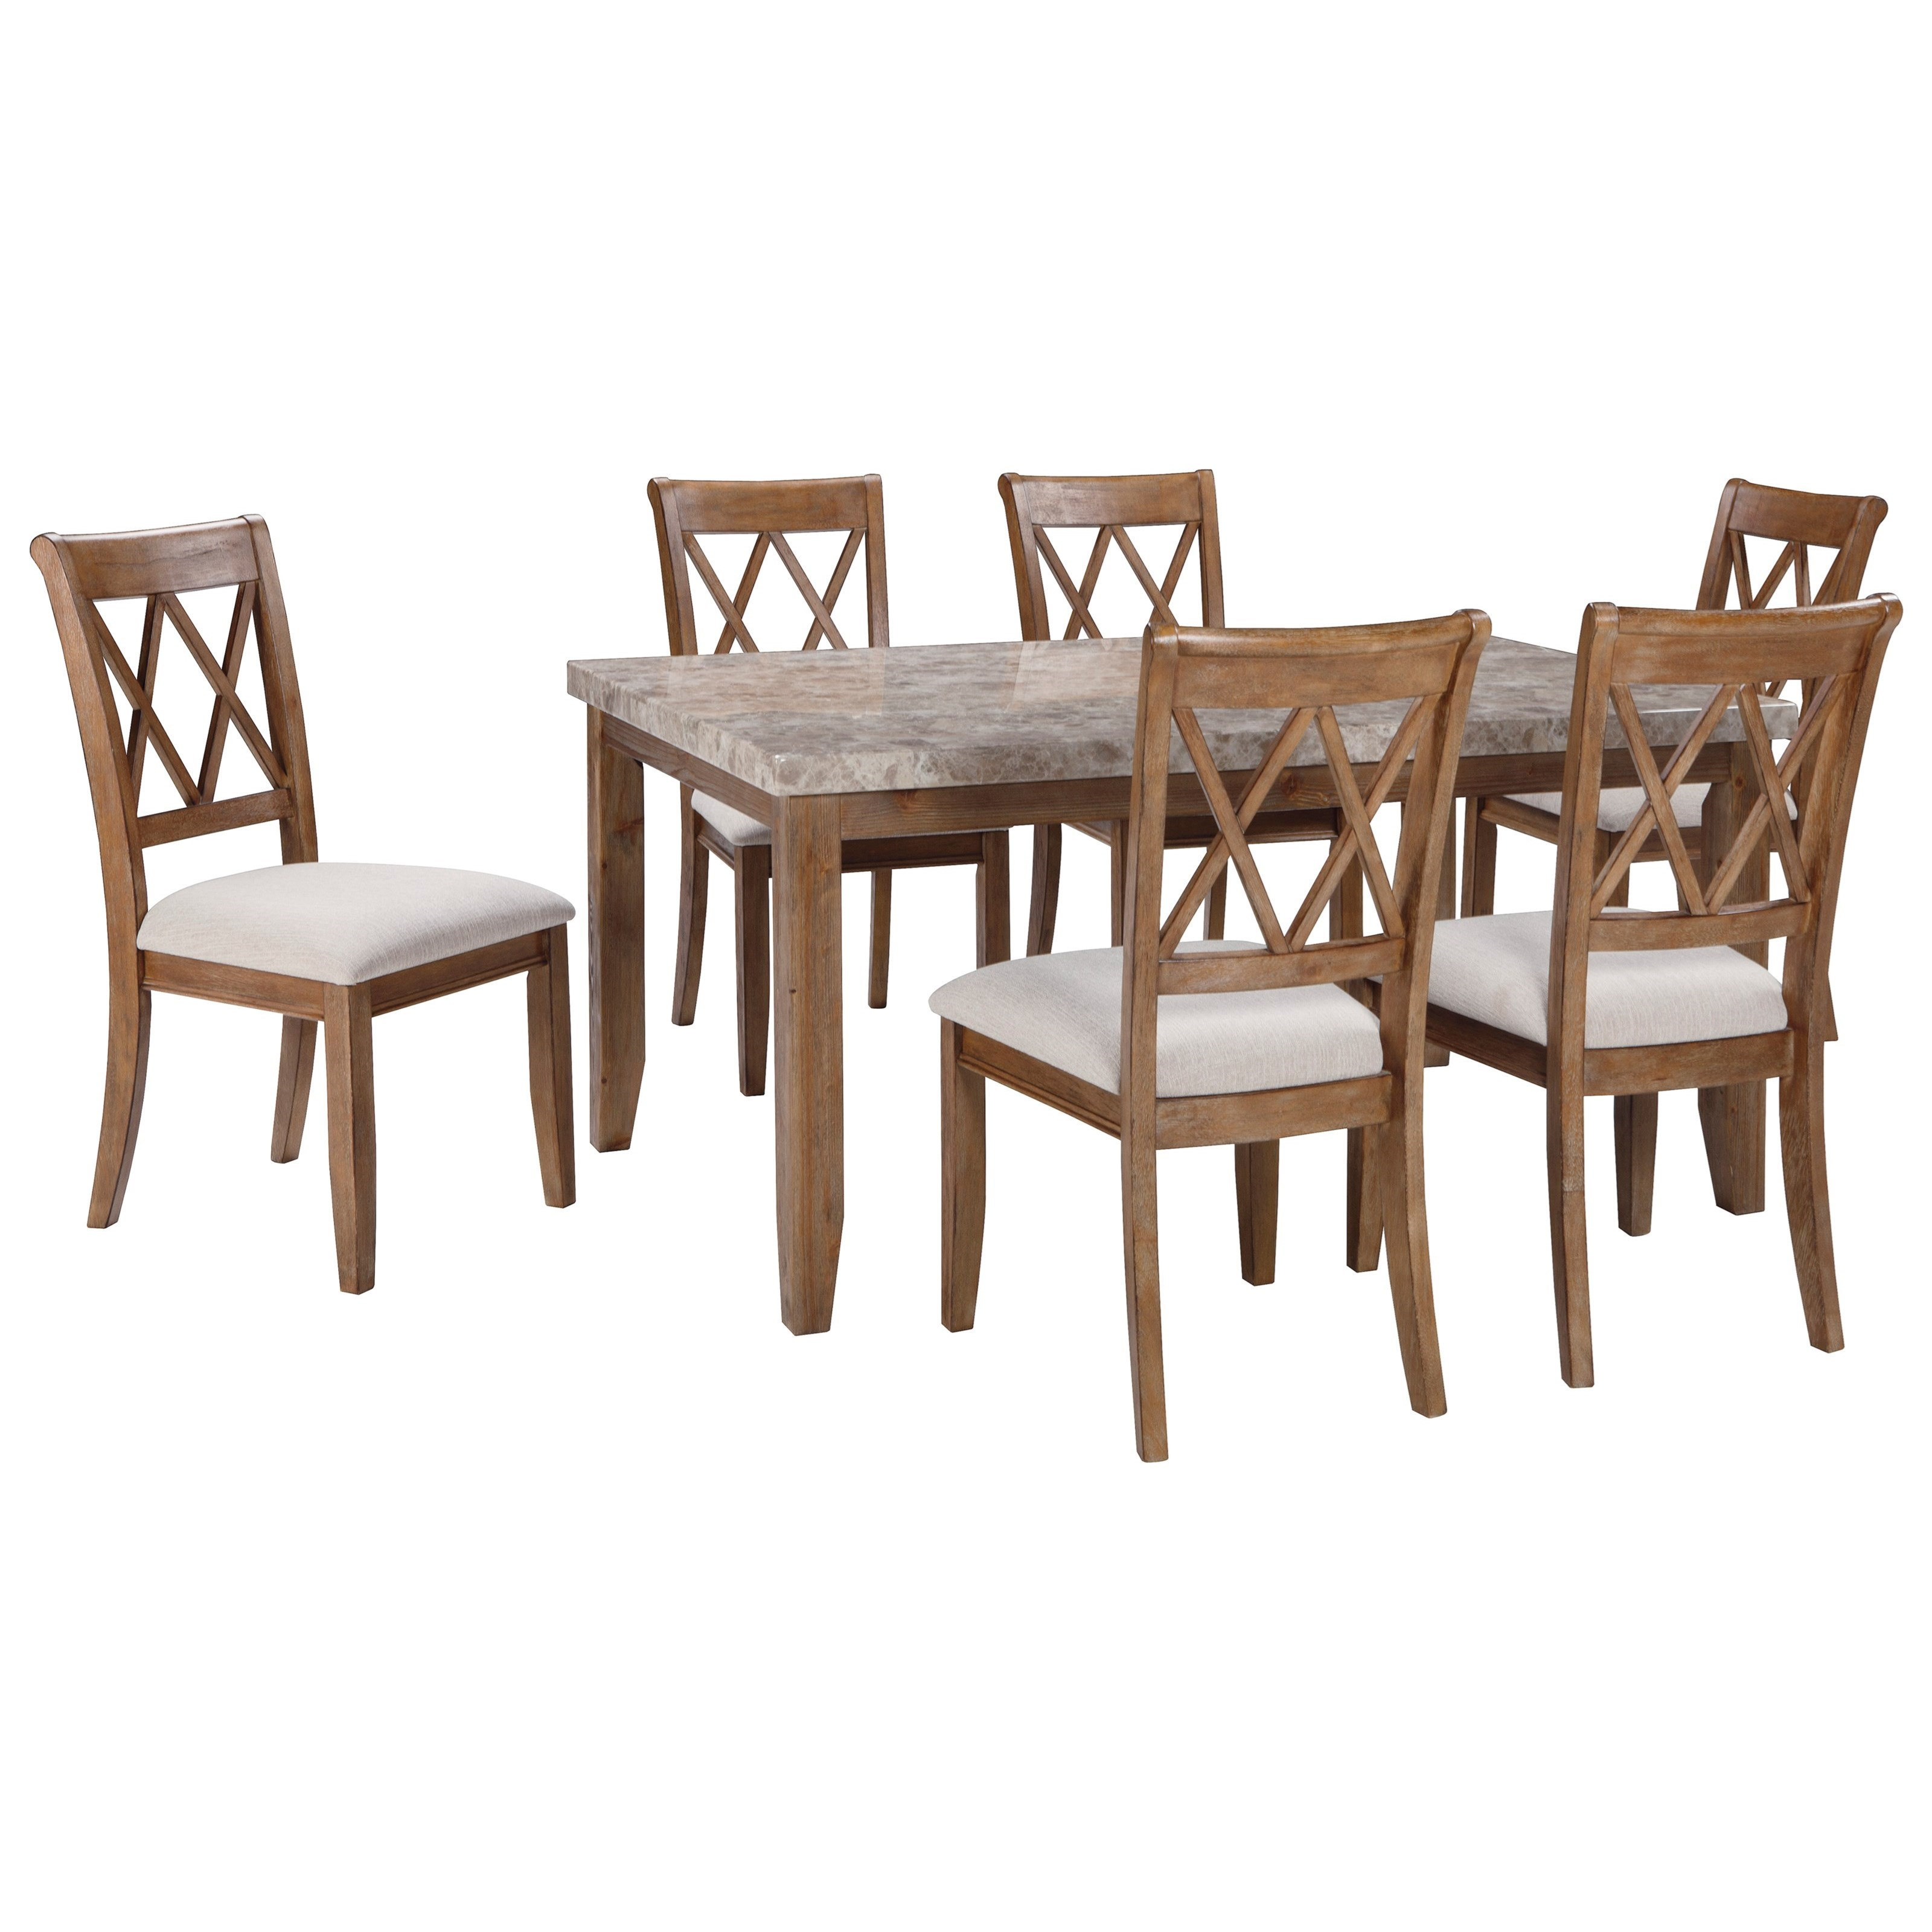 Signature Design by Ashley Narvilla 7-Piece Rectangular Dining Table Set - Item Number: D559-25+6x01